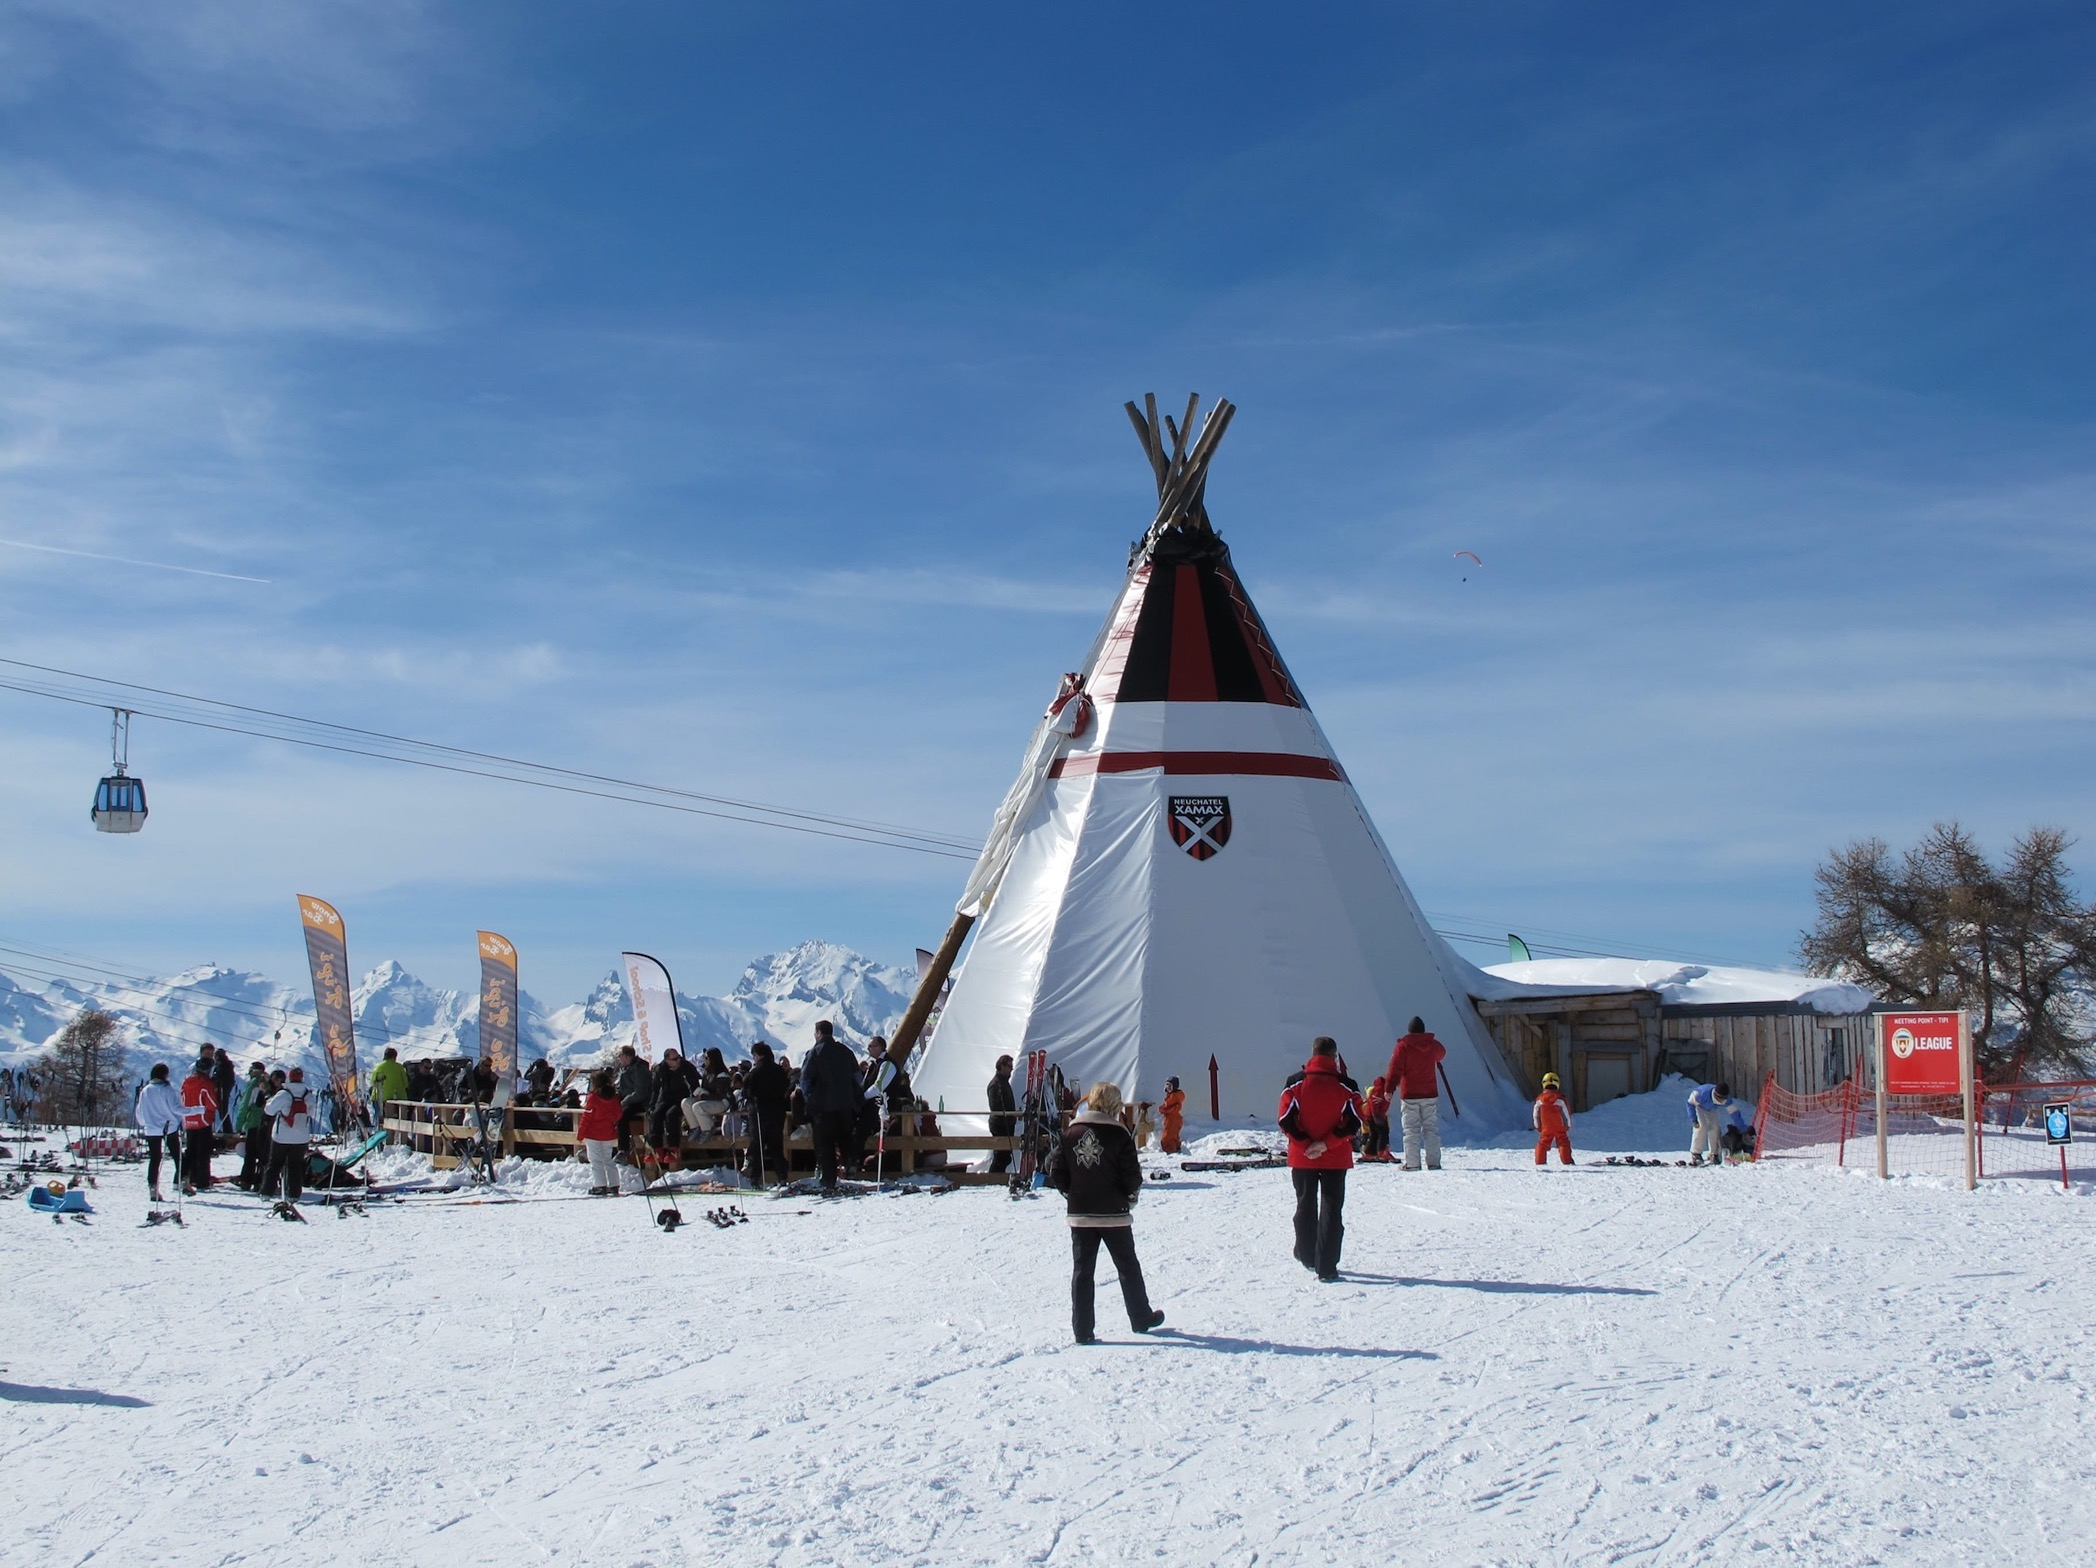 photo of teepee apres ski bar thyon2000